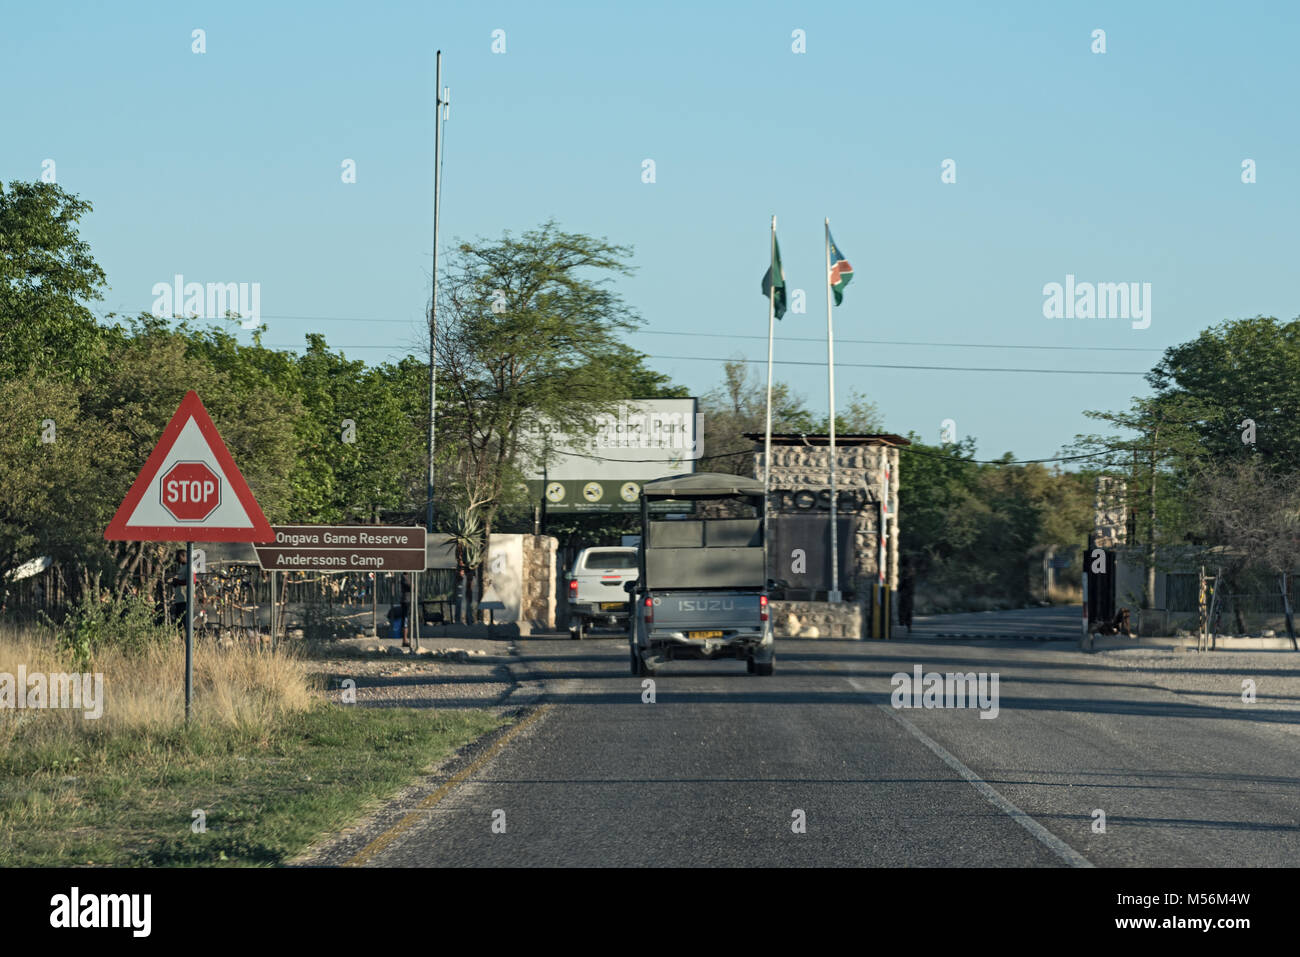 drive cars are waiting to buy tickets at the Anderson gate of Etosha National Park - Stock Image